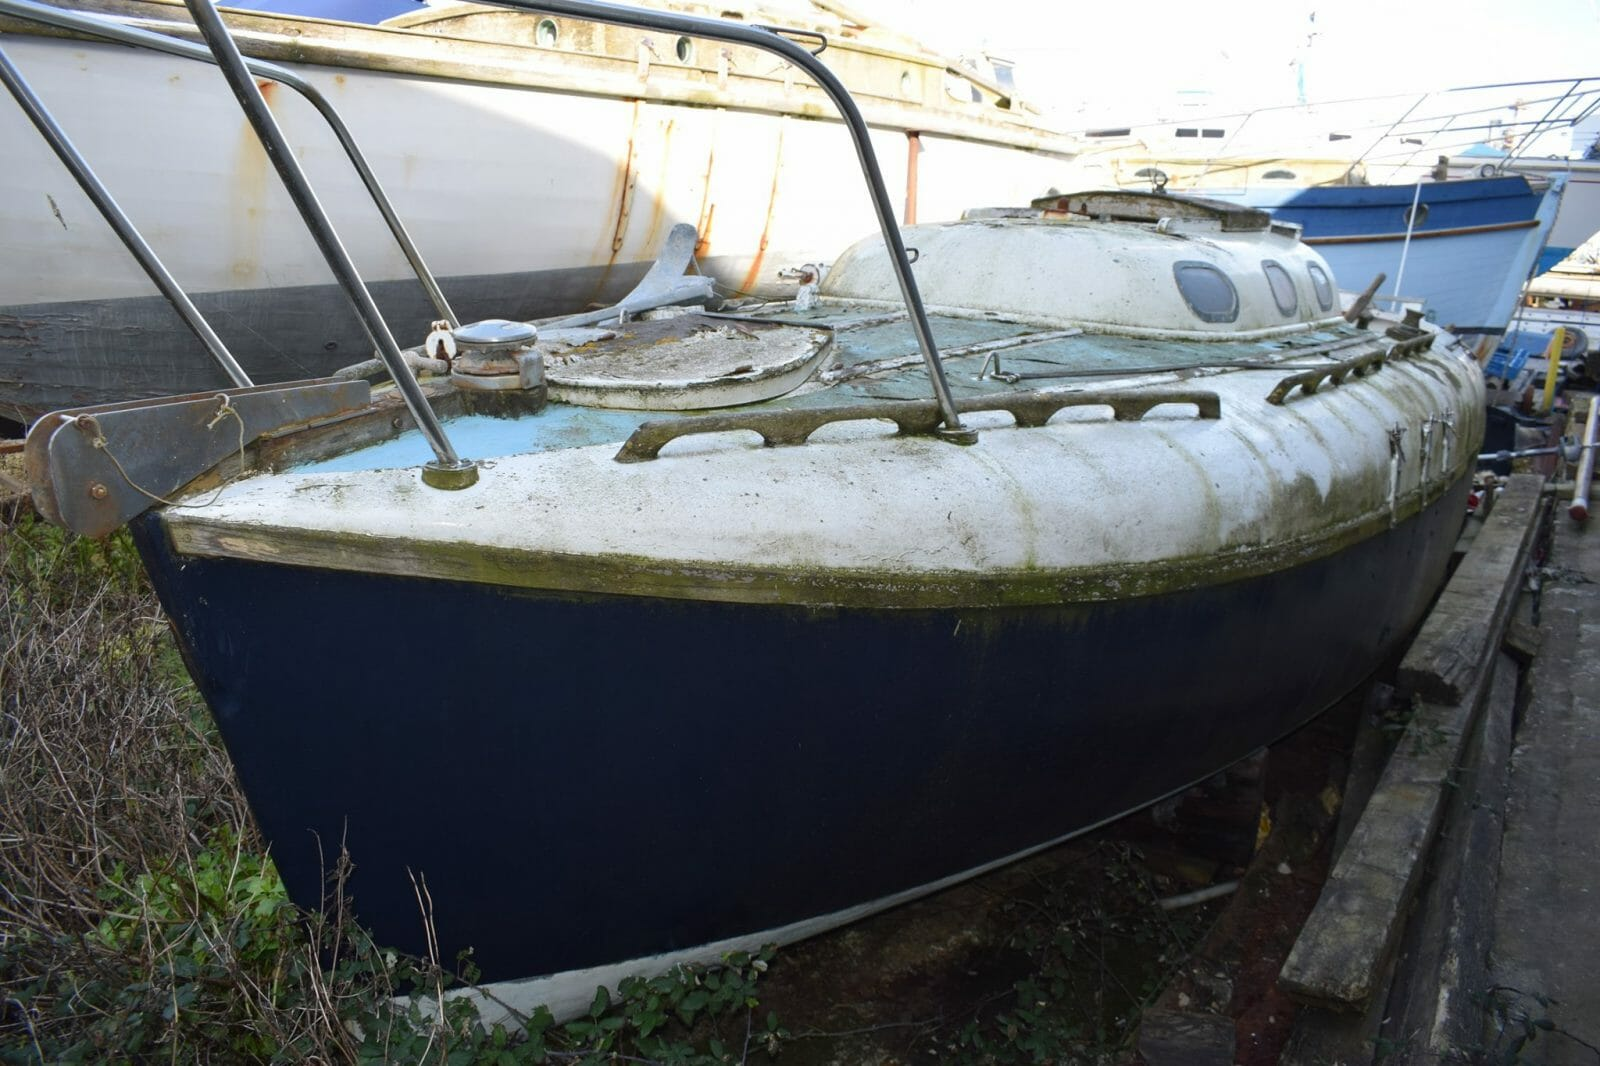 A166 Hullabaloo For Sale - £400 in boatyard on Portland